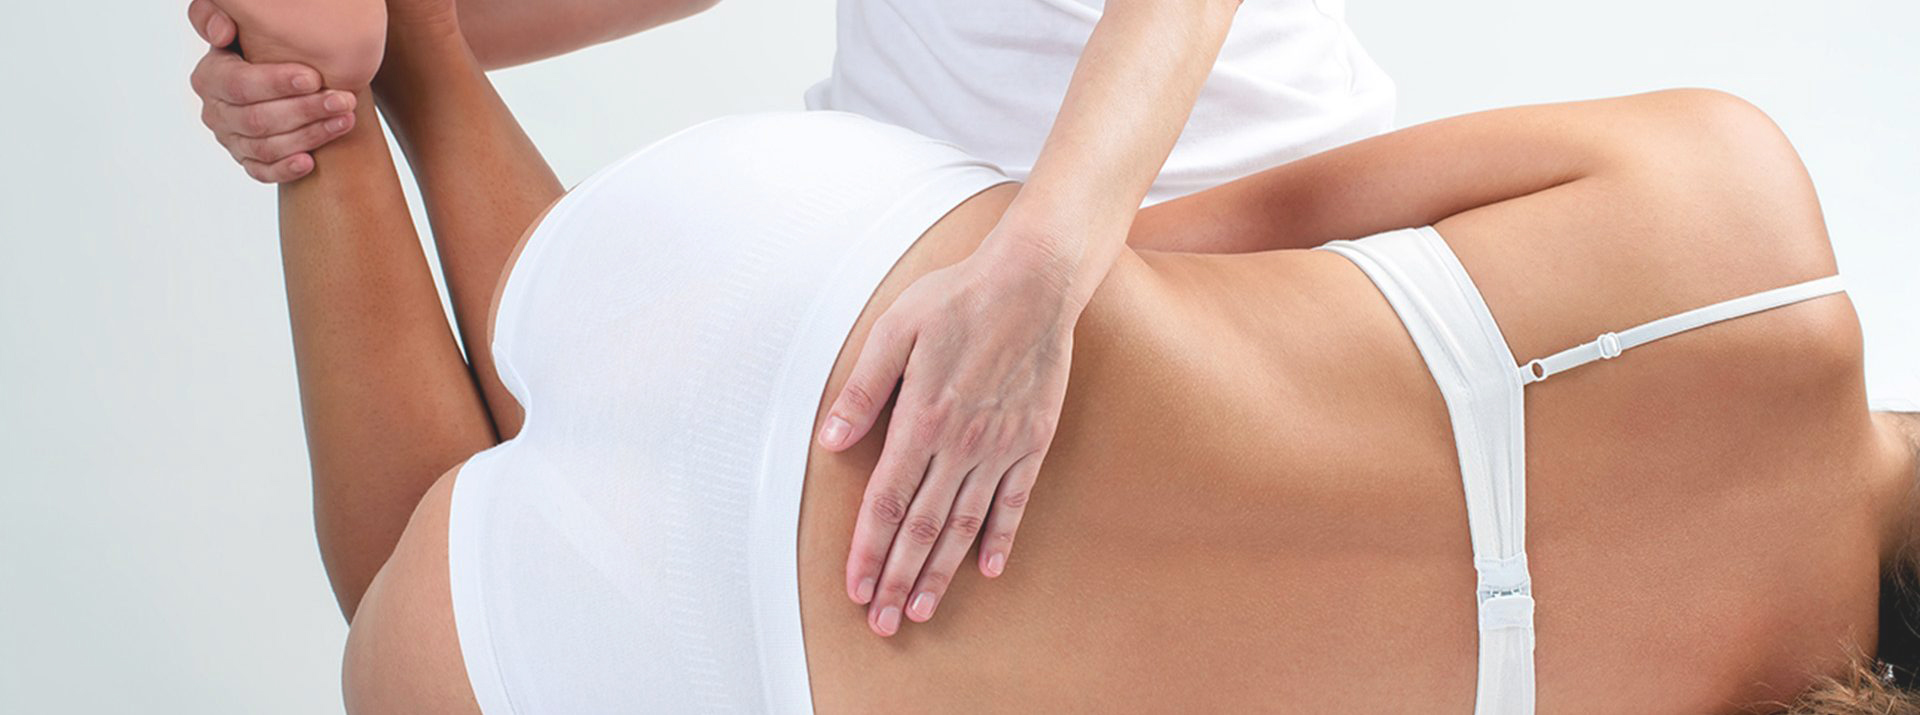 Osteopathy - Osteopaths treat with a range of techniques from soft tissue massage to stronger techniques of articulation and mobilisation